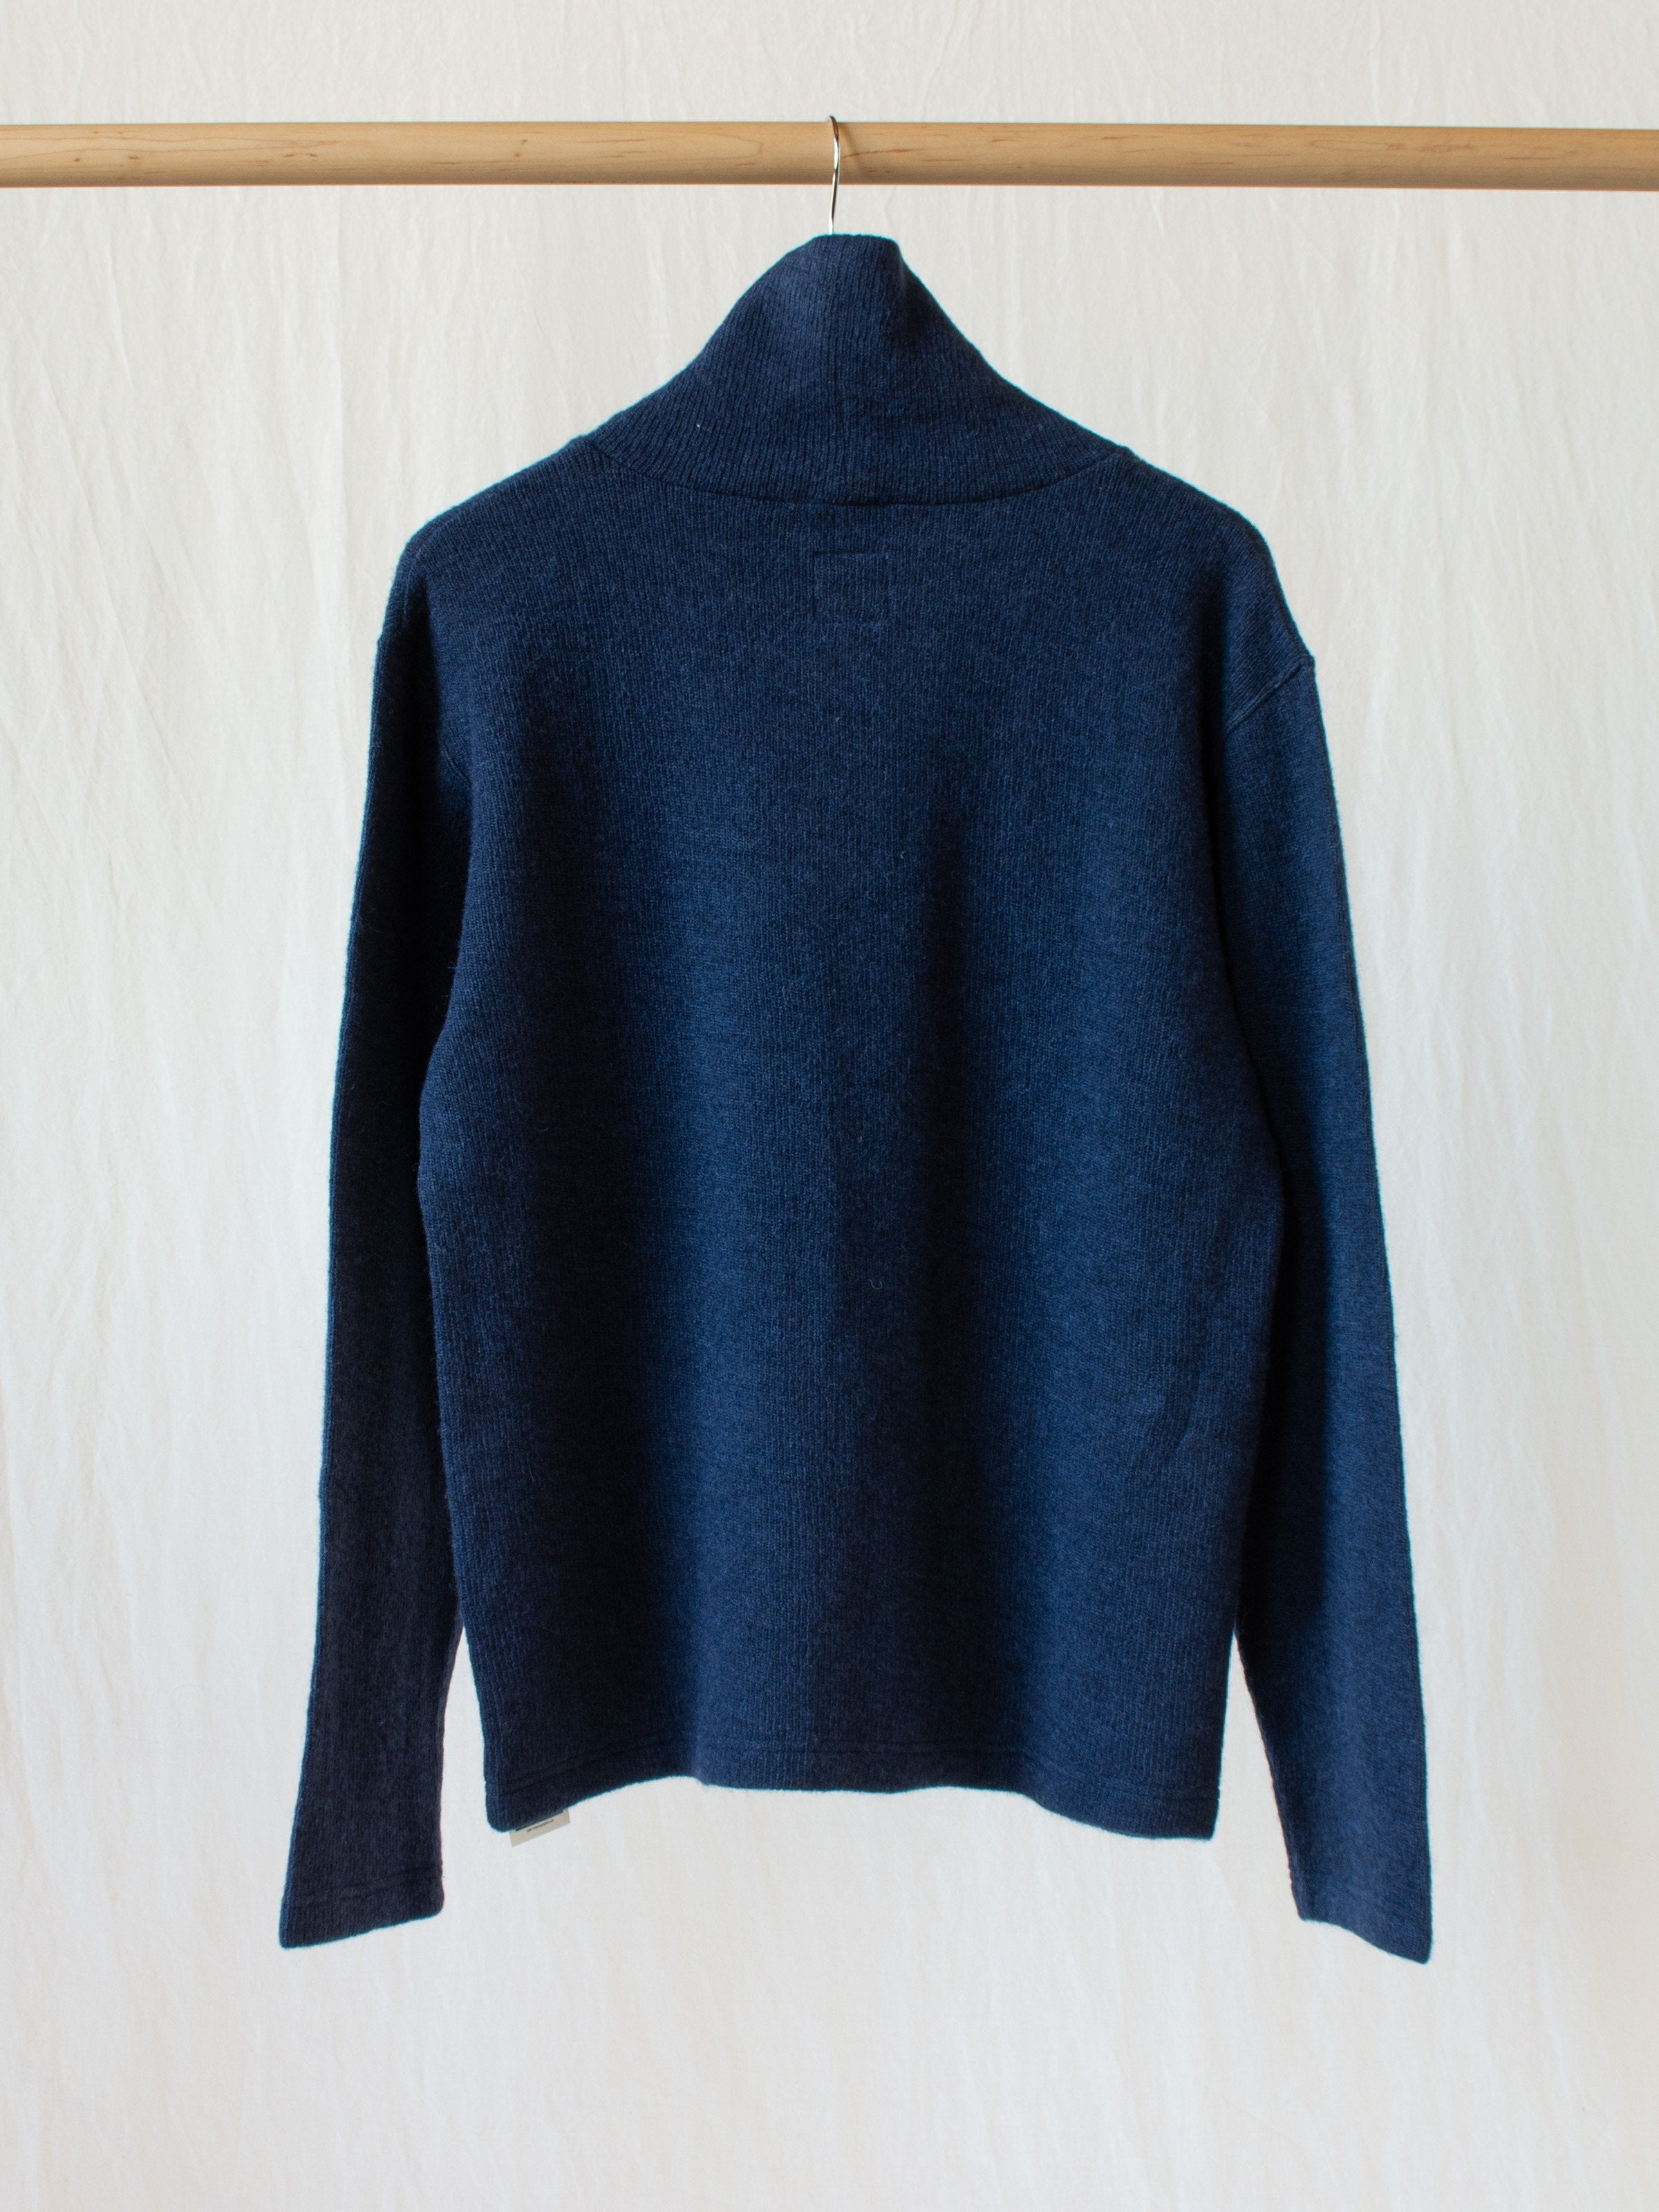 Wool Blend Turtleneck with Double Face Jersey Lining - Navy